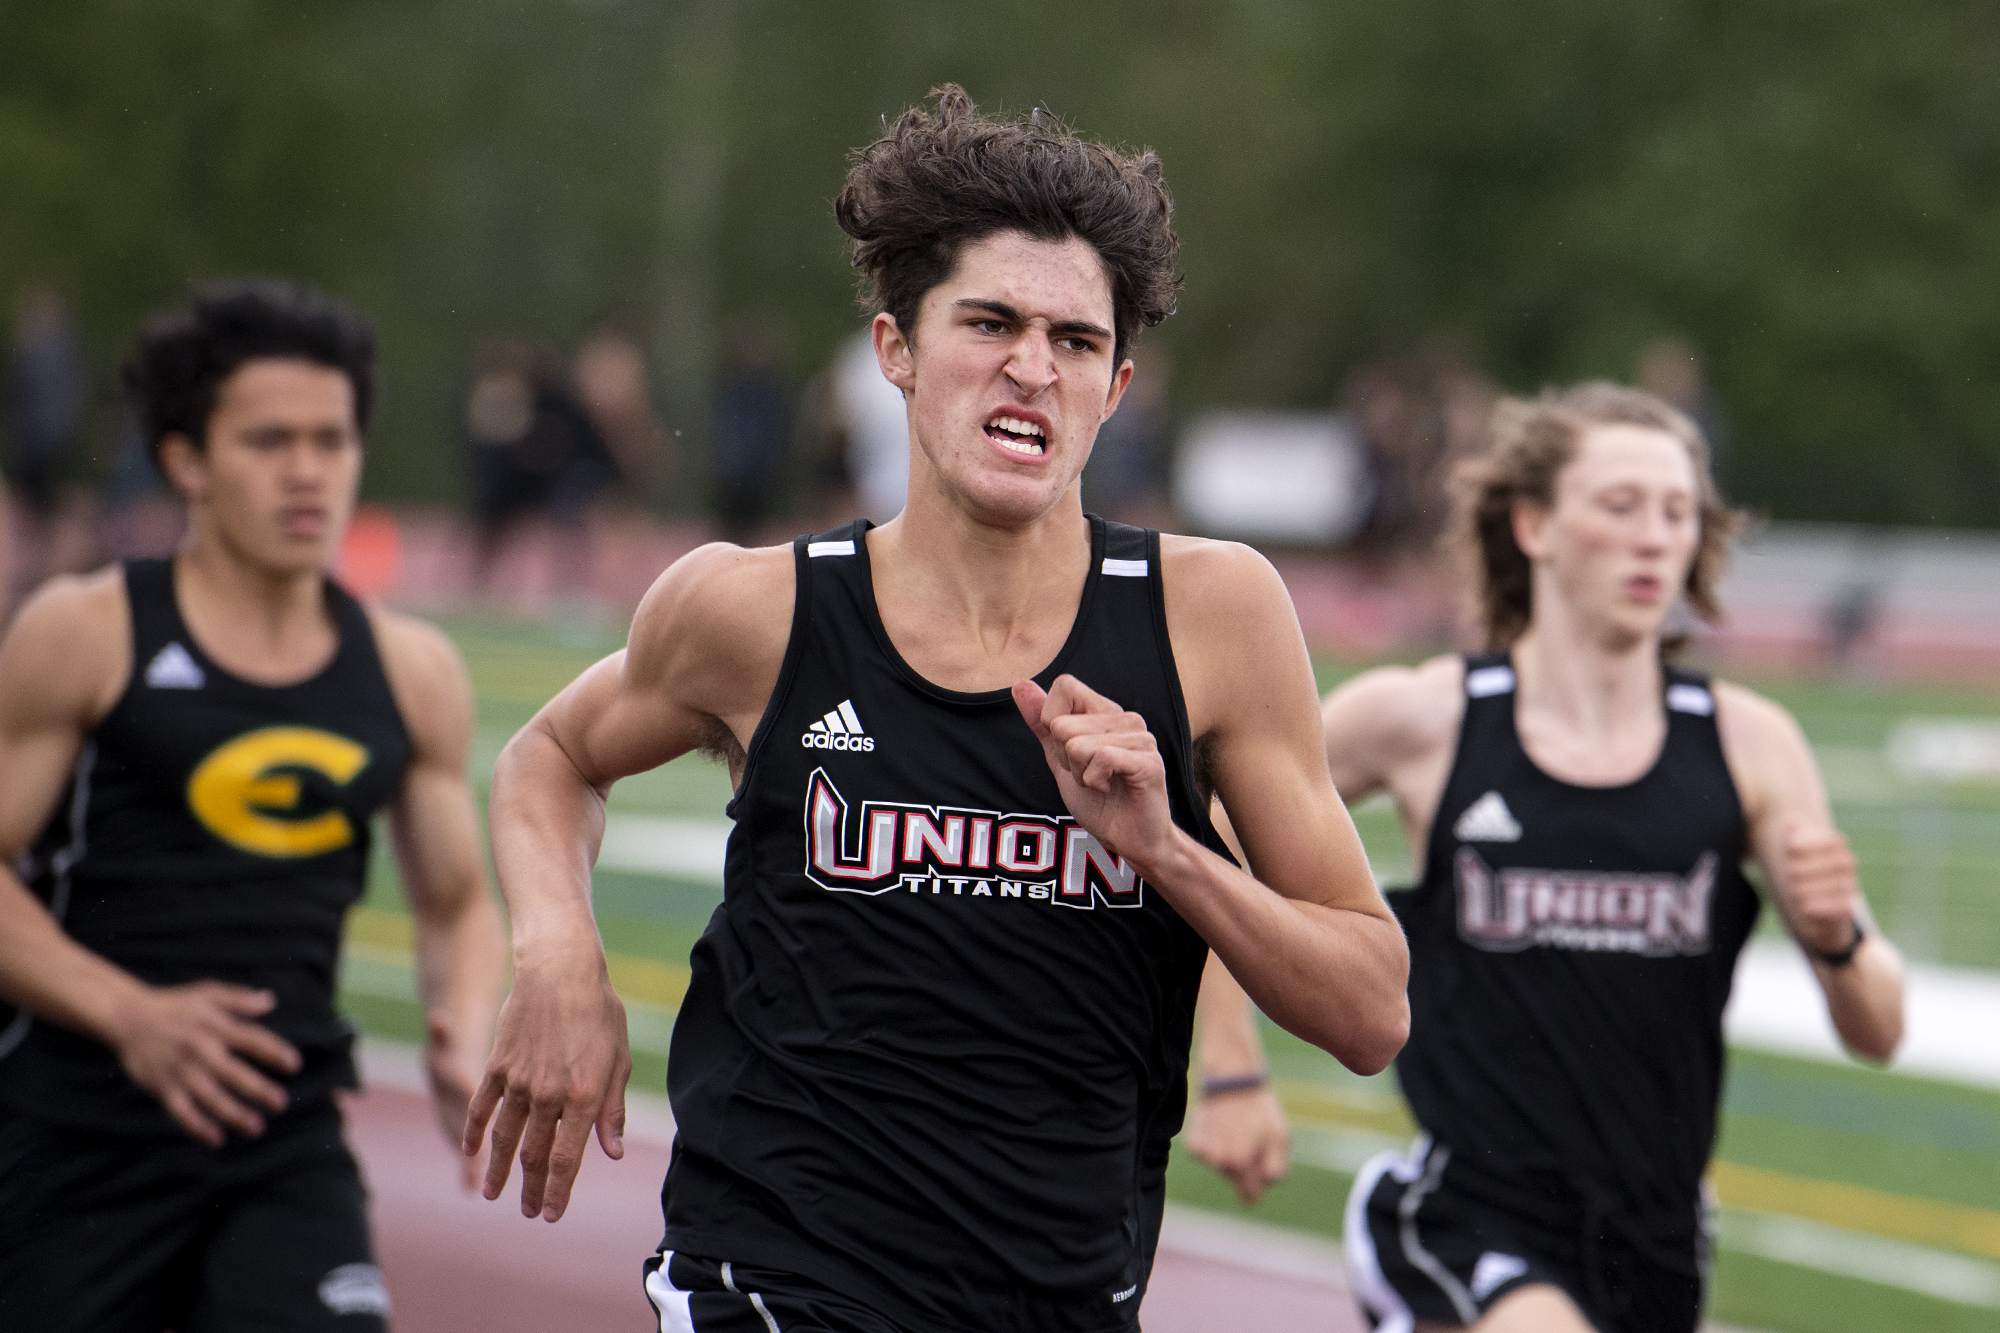 Union freshman Grayson Caldwell hustles his way down the back straight of the 400-meter race in a 4A/3A Greater St. Helens League dual on Tuesday, May 25, 2021, at Union High School. Caldwell finished second with a personal-best 52.82-second mark.